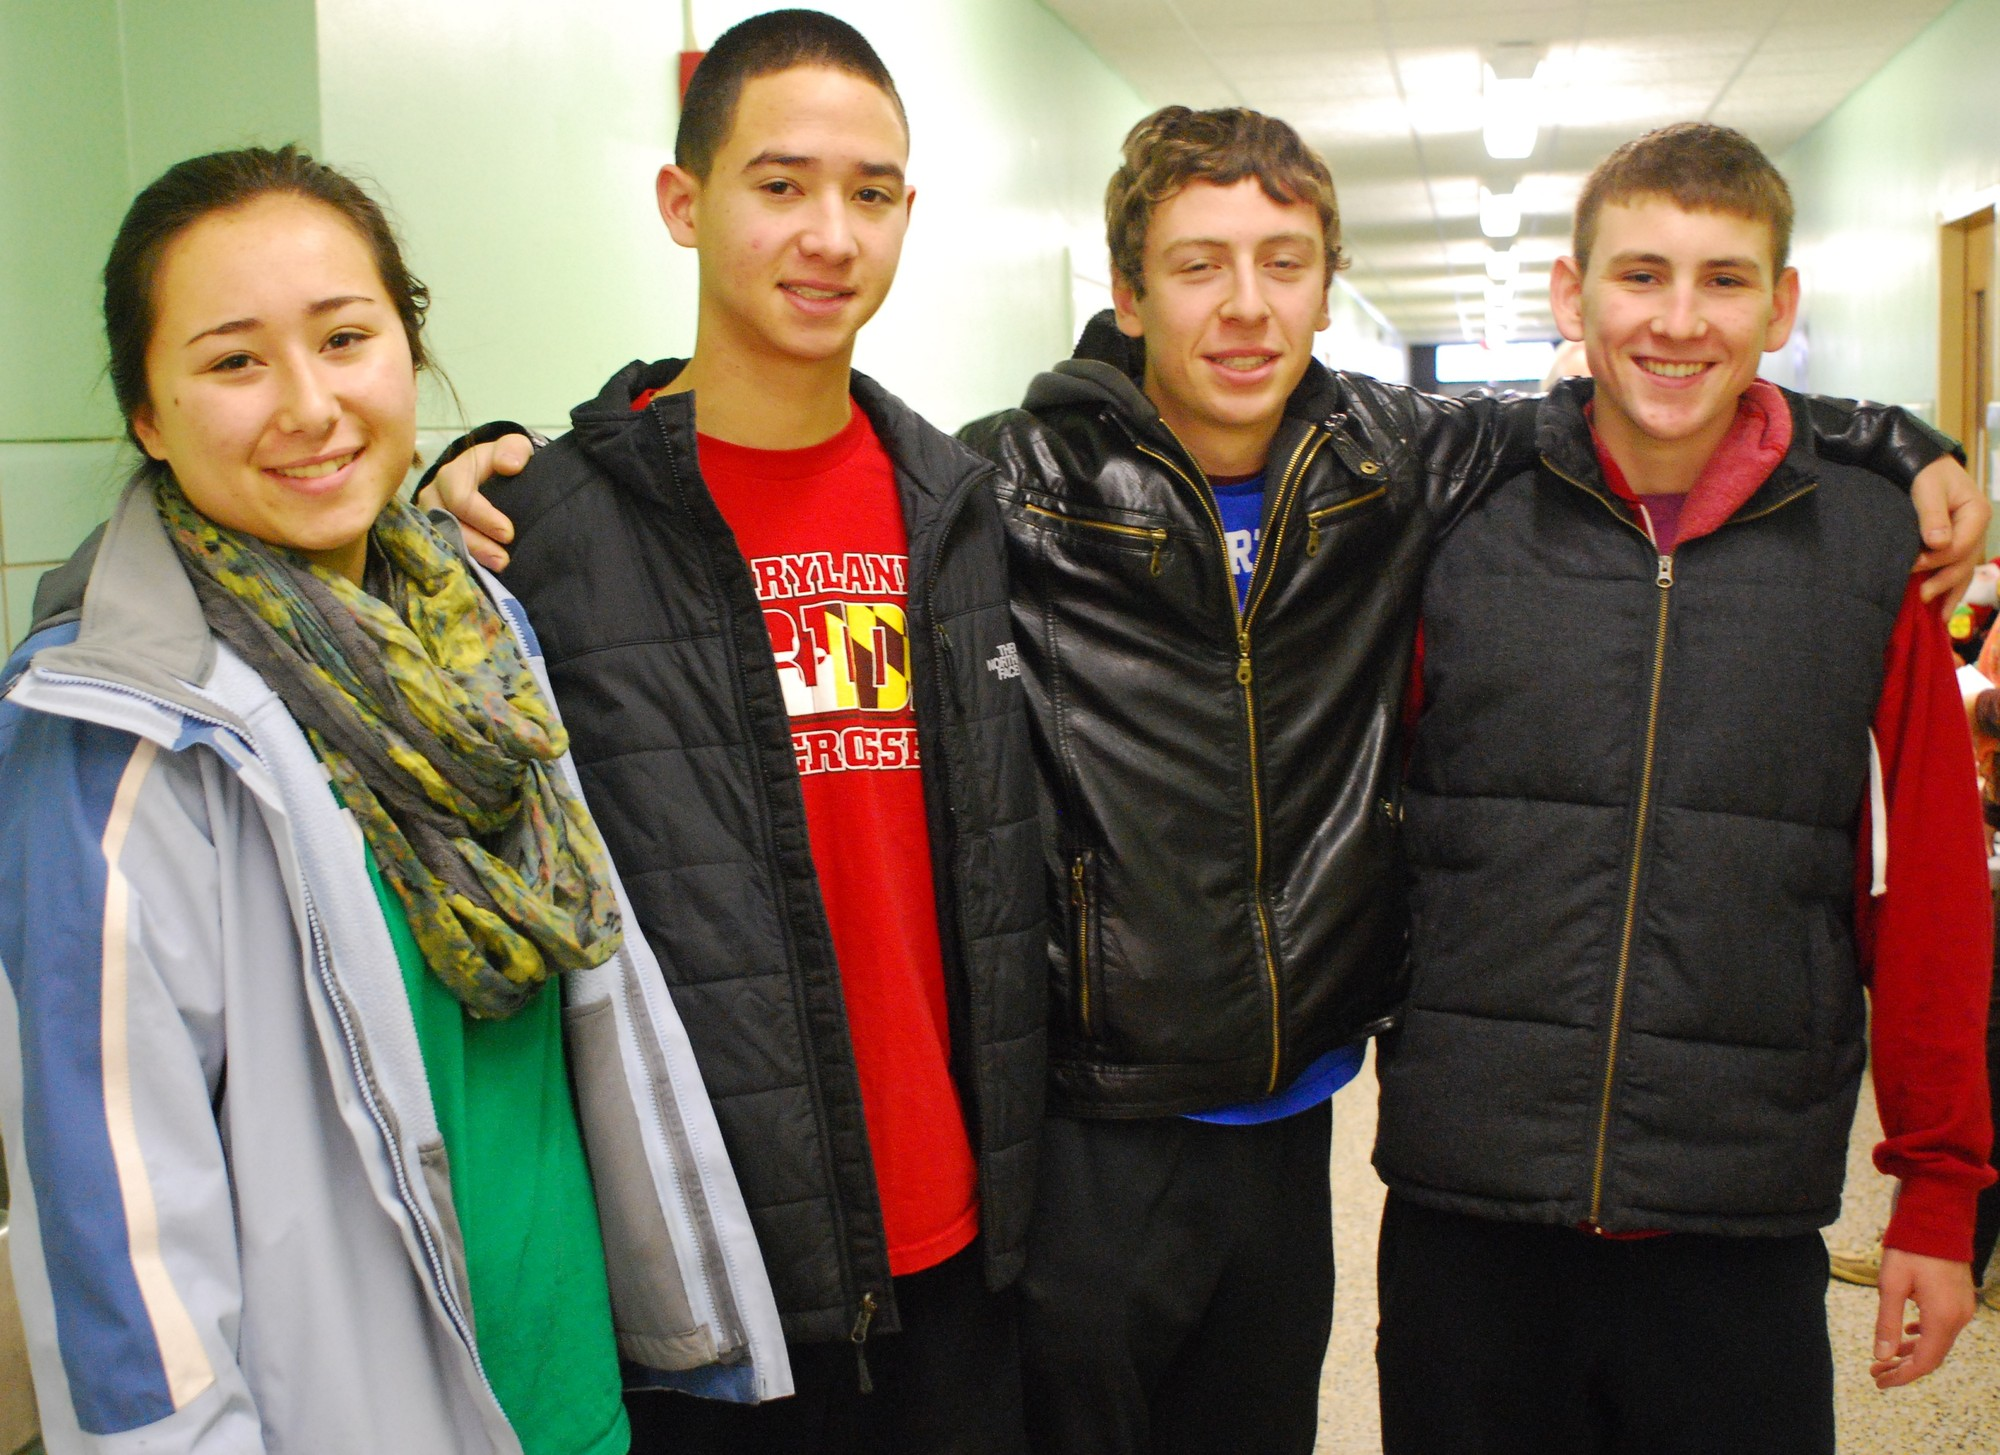 The Key Club's officers — sister and brother Marie and Patrick Chin, Eric Ravens and Thomas Macaluso — were among the volunteers lending a hand on Sunday.